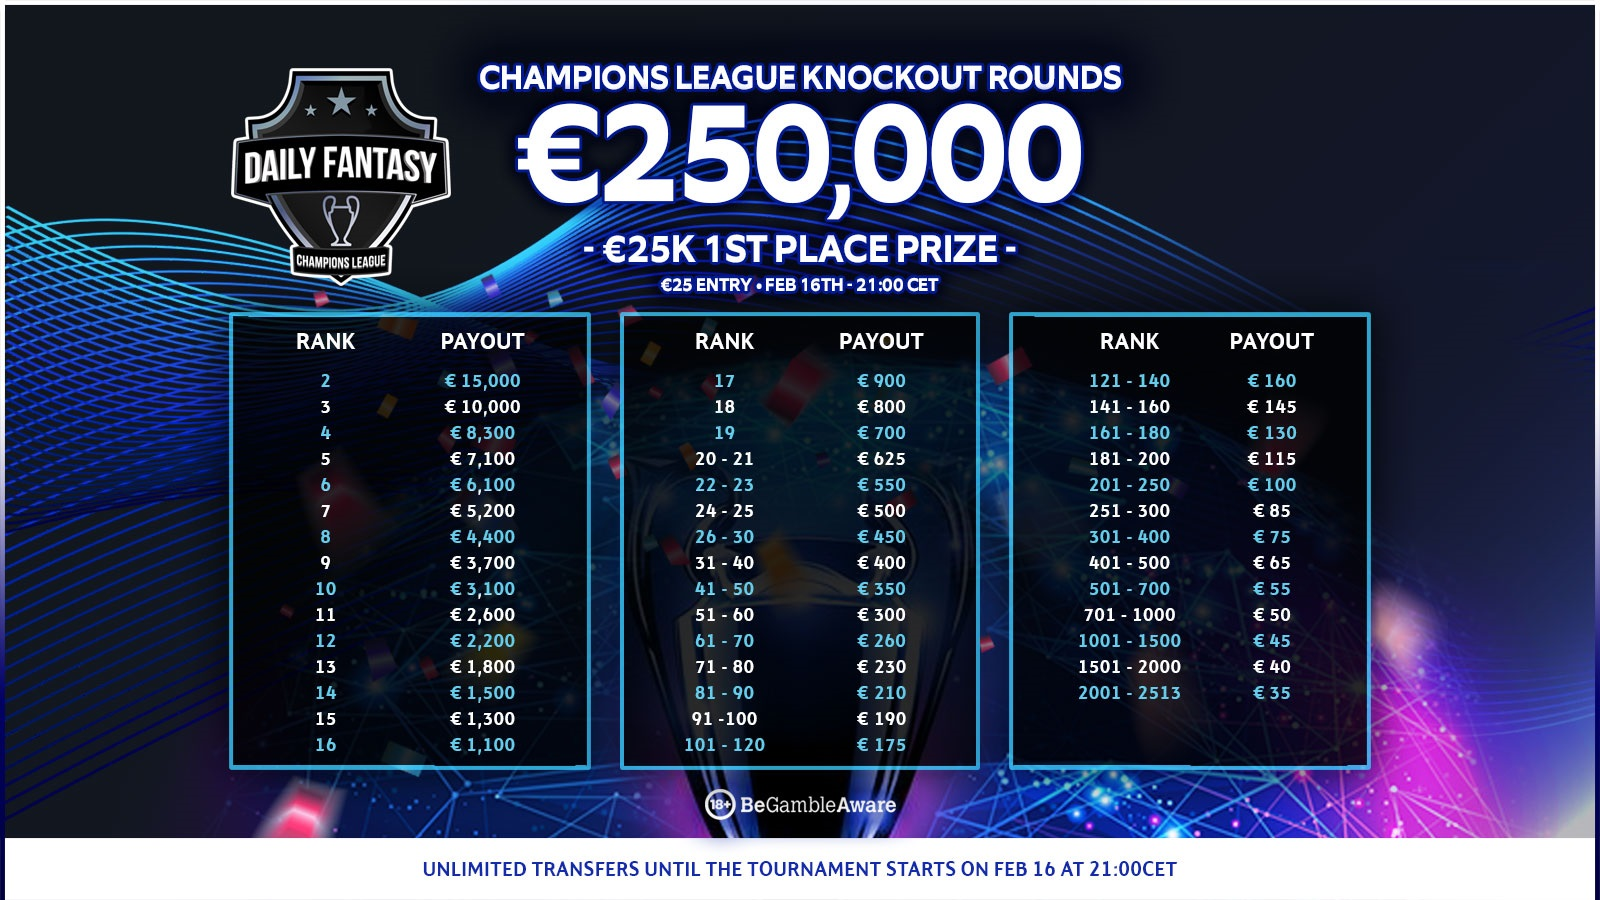 FanTeam Champions League 250K prize pool